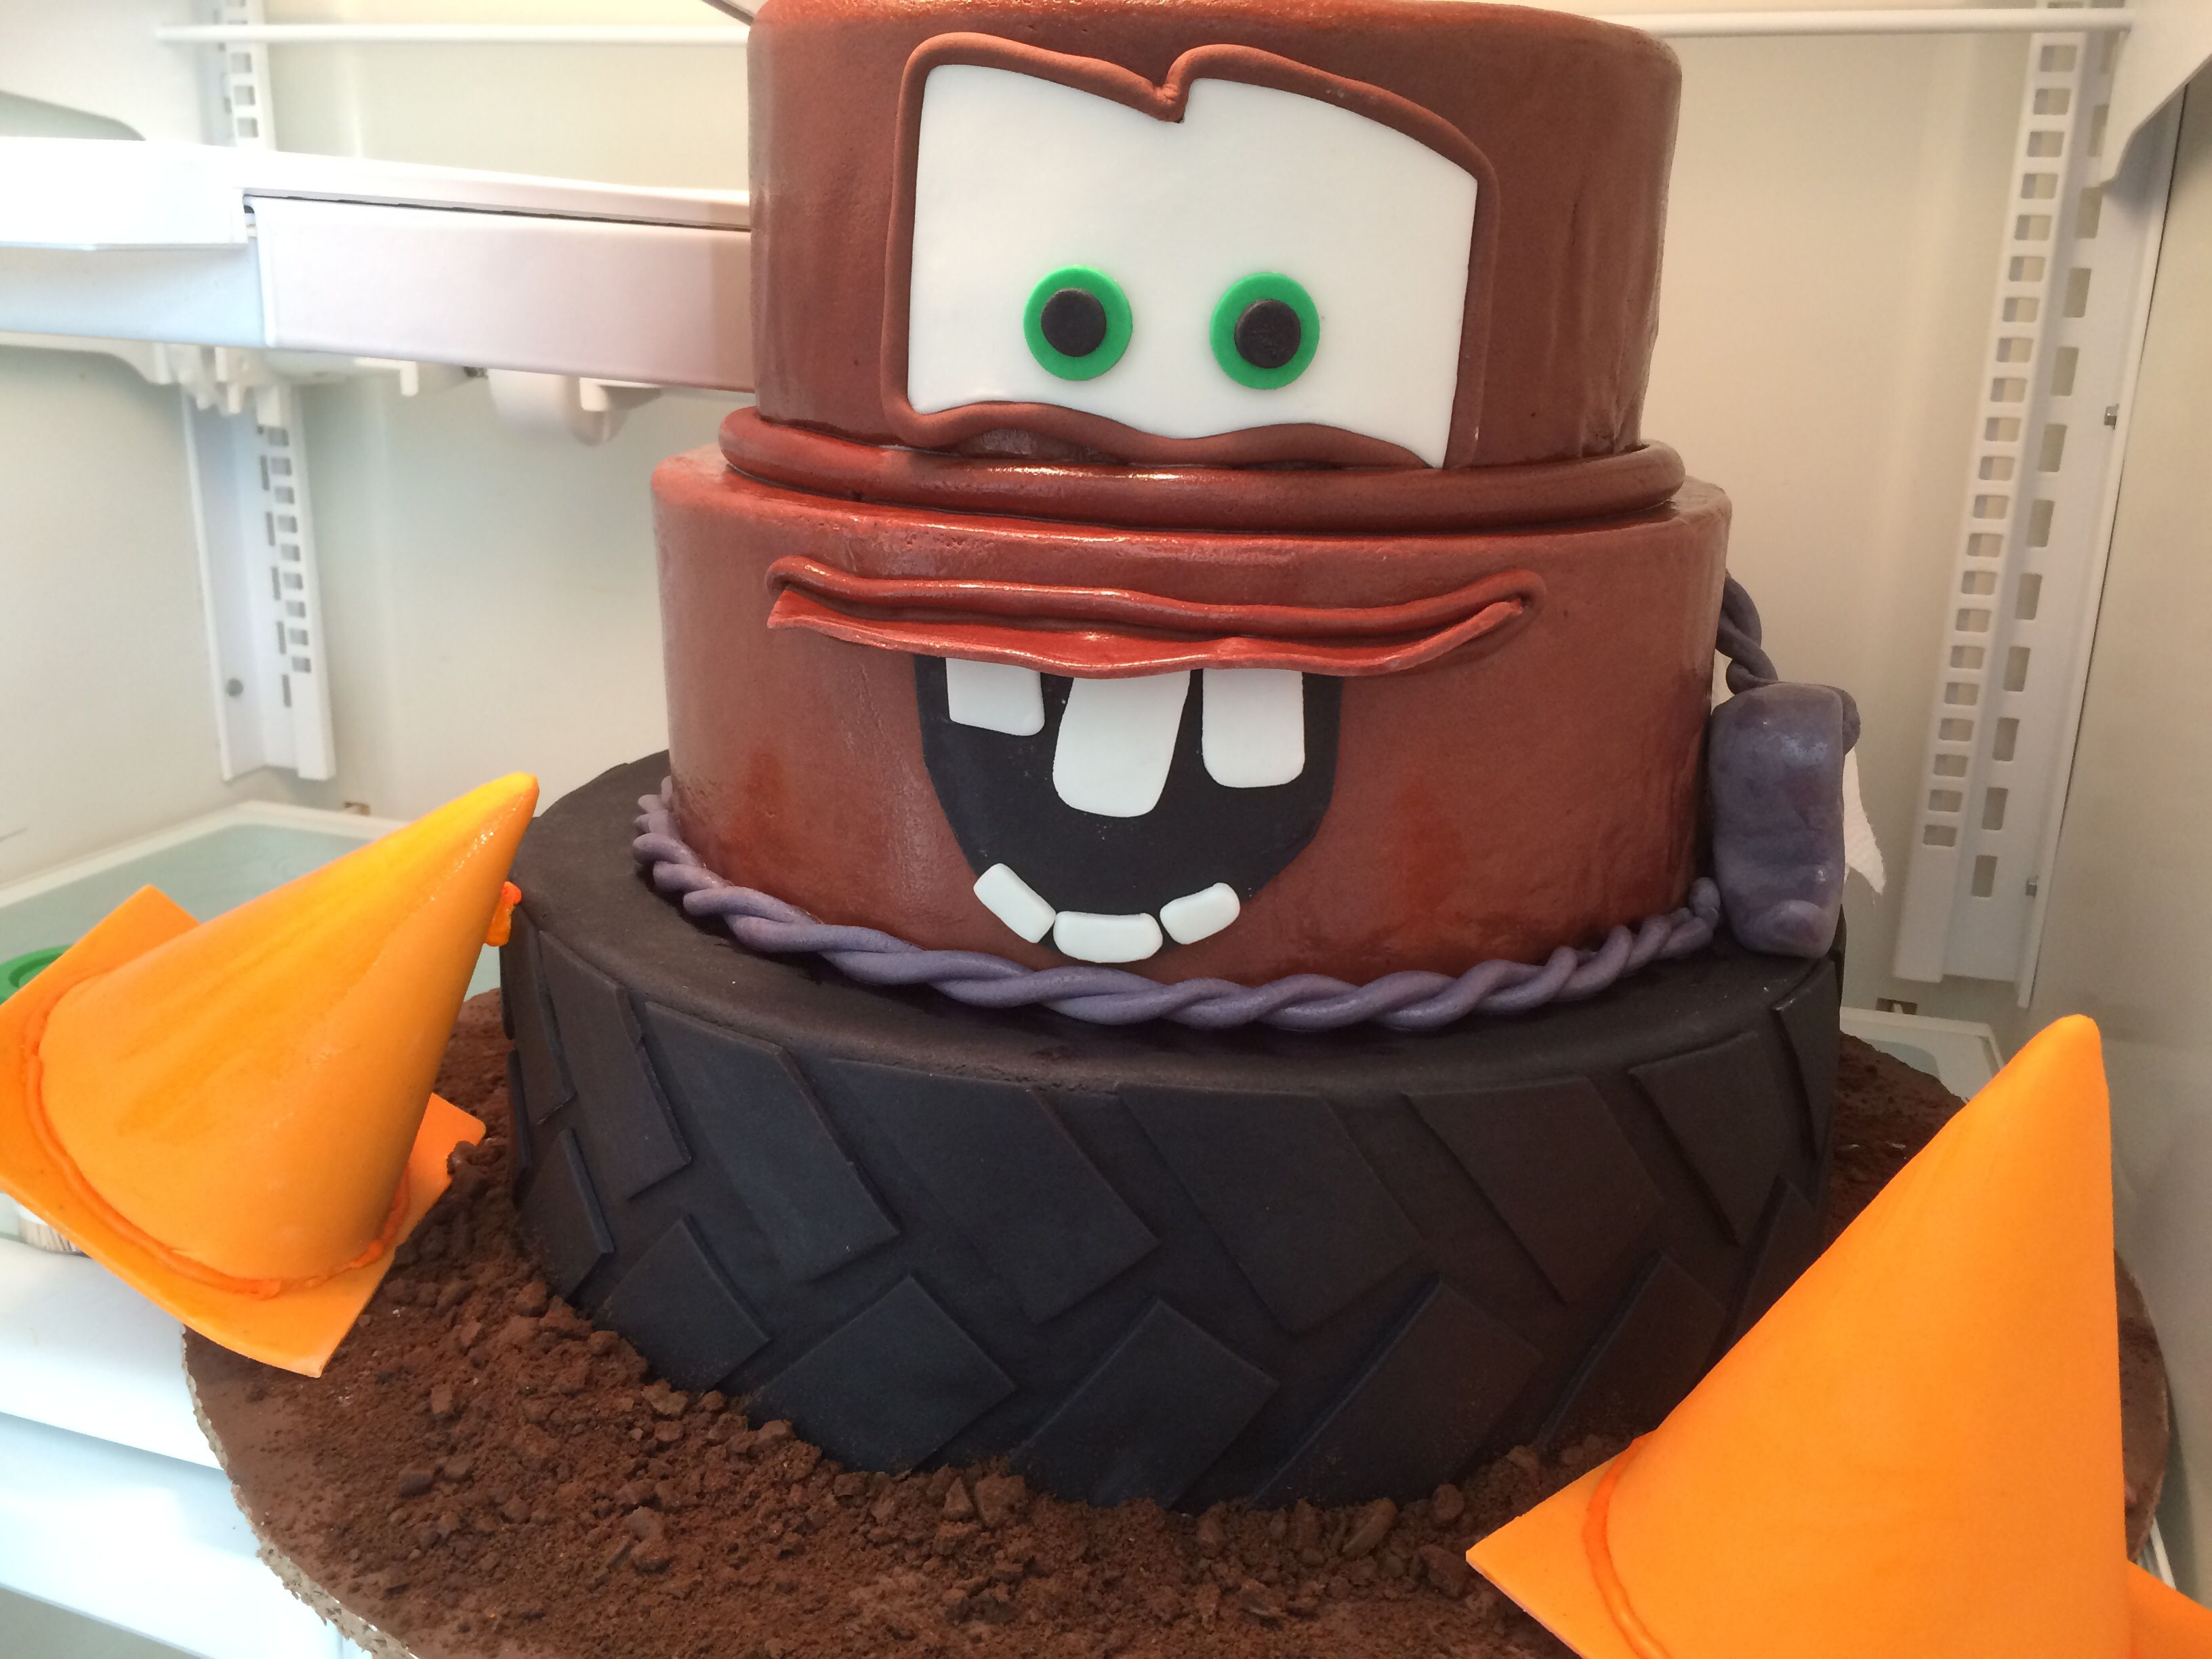 Incredible Tow Mater Cake With Images Cars Birthday Cake Mater Cake Funny Birthday Cards Online Kookostrdamsfinfo